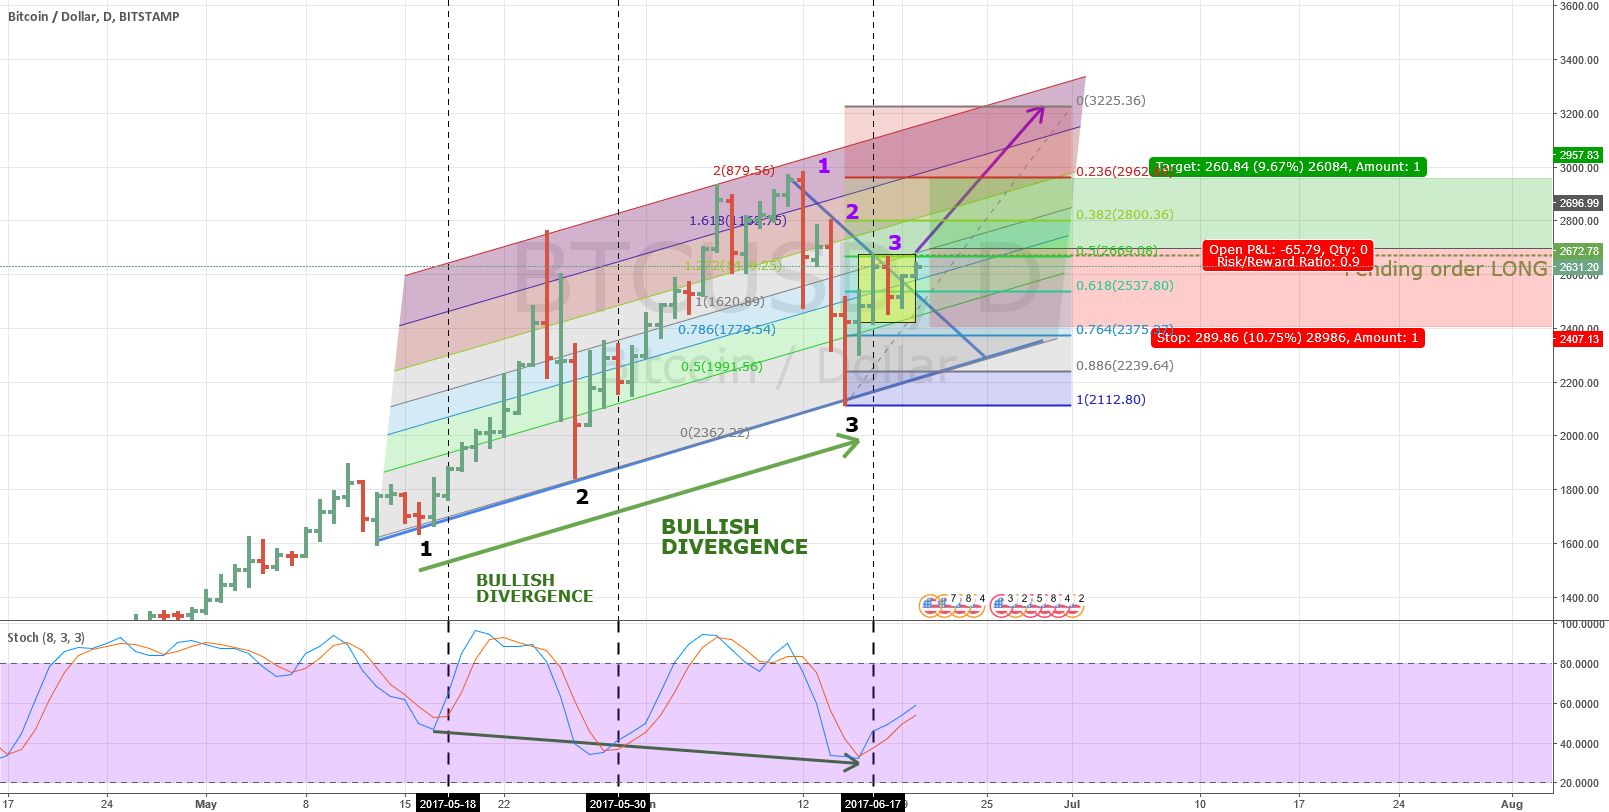 BITCOIN will have a big movement to 3225